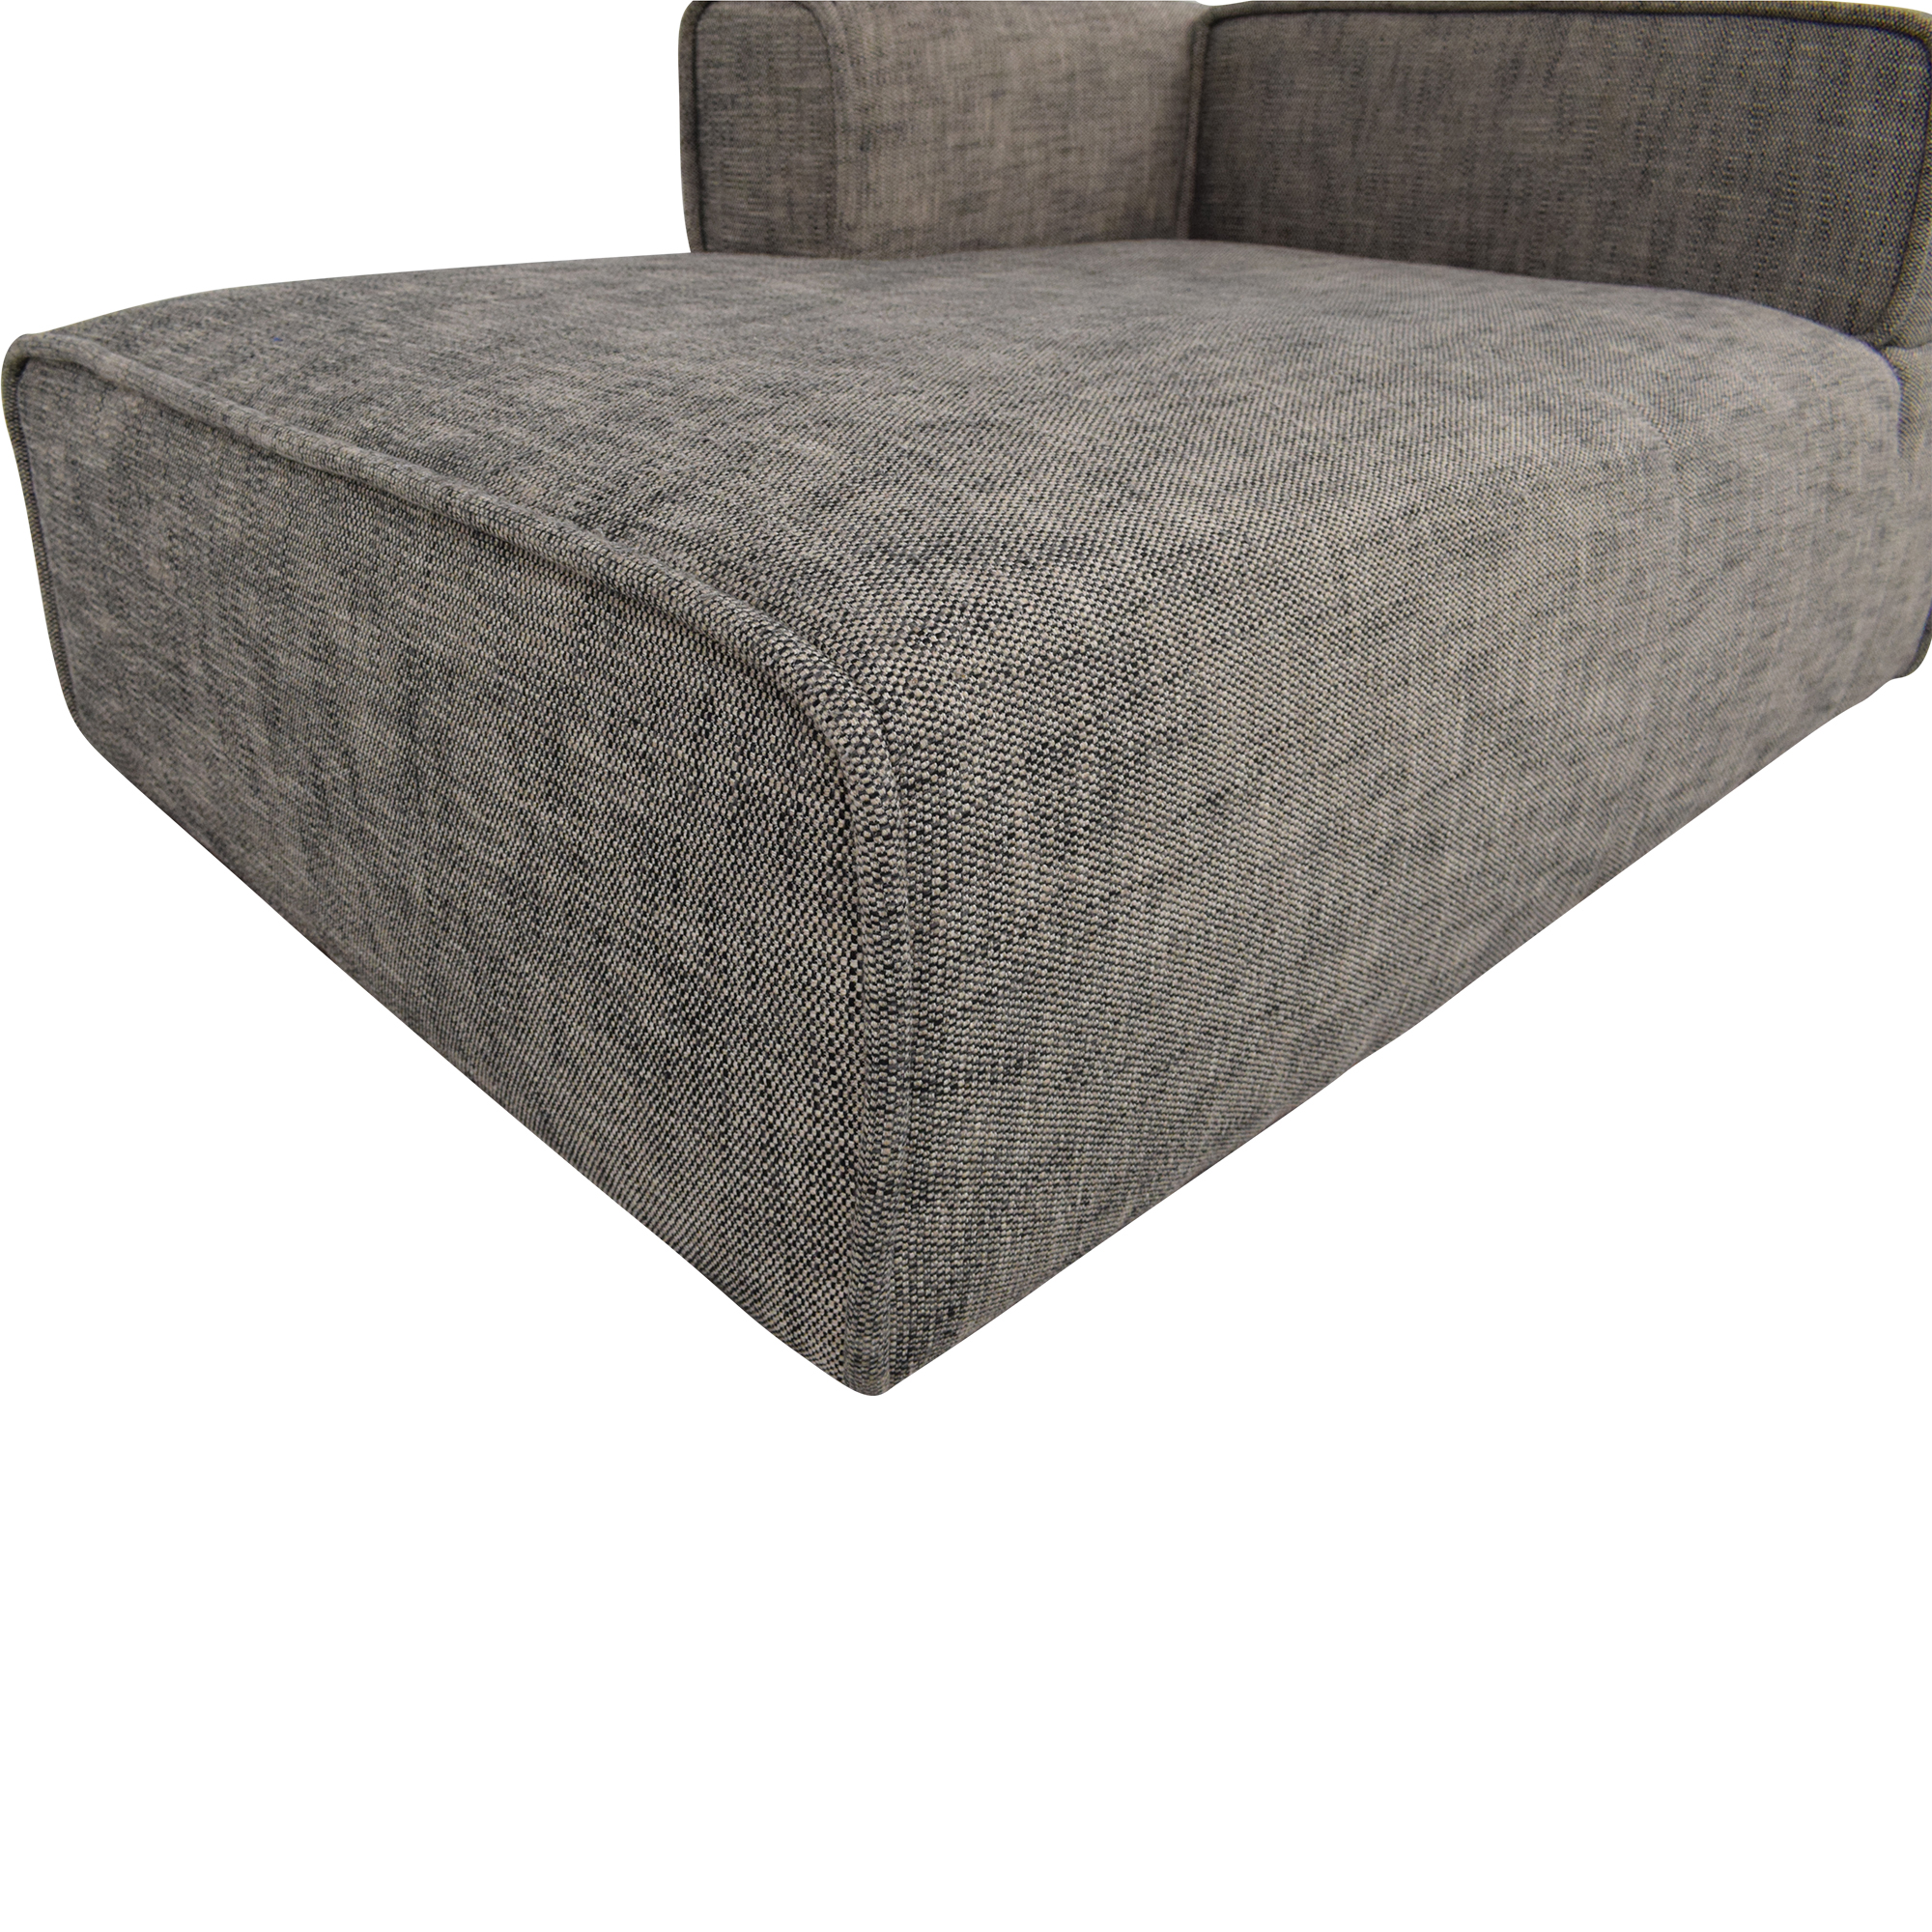 Article Article Quadra Left Chaise Module grey